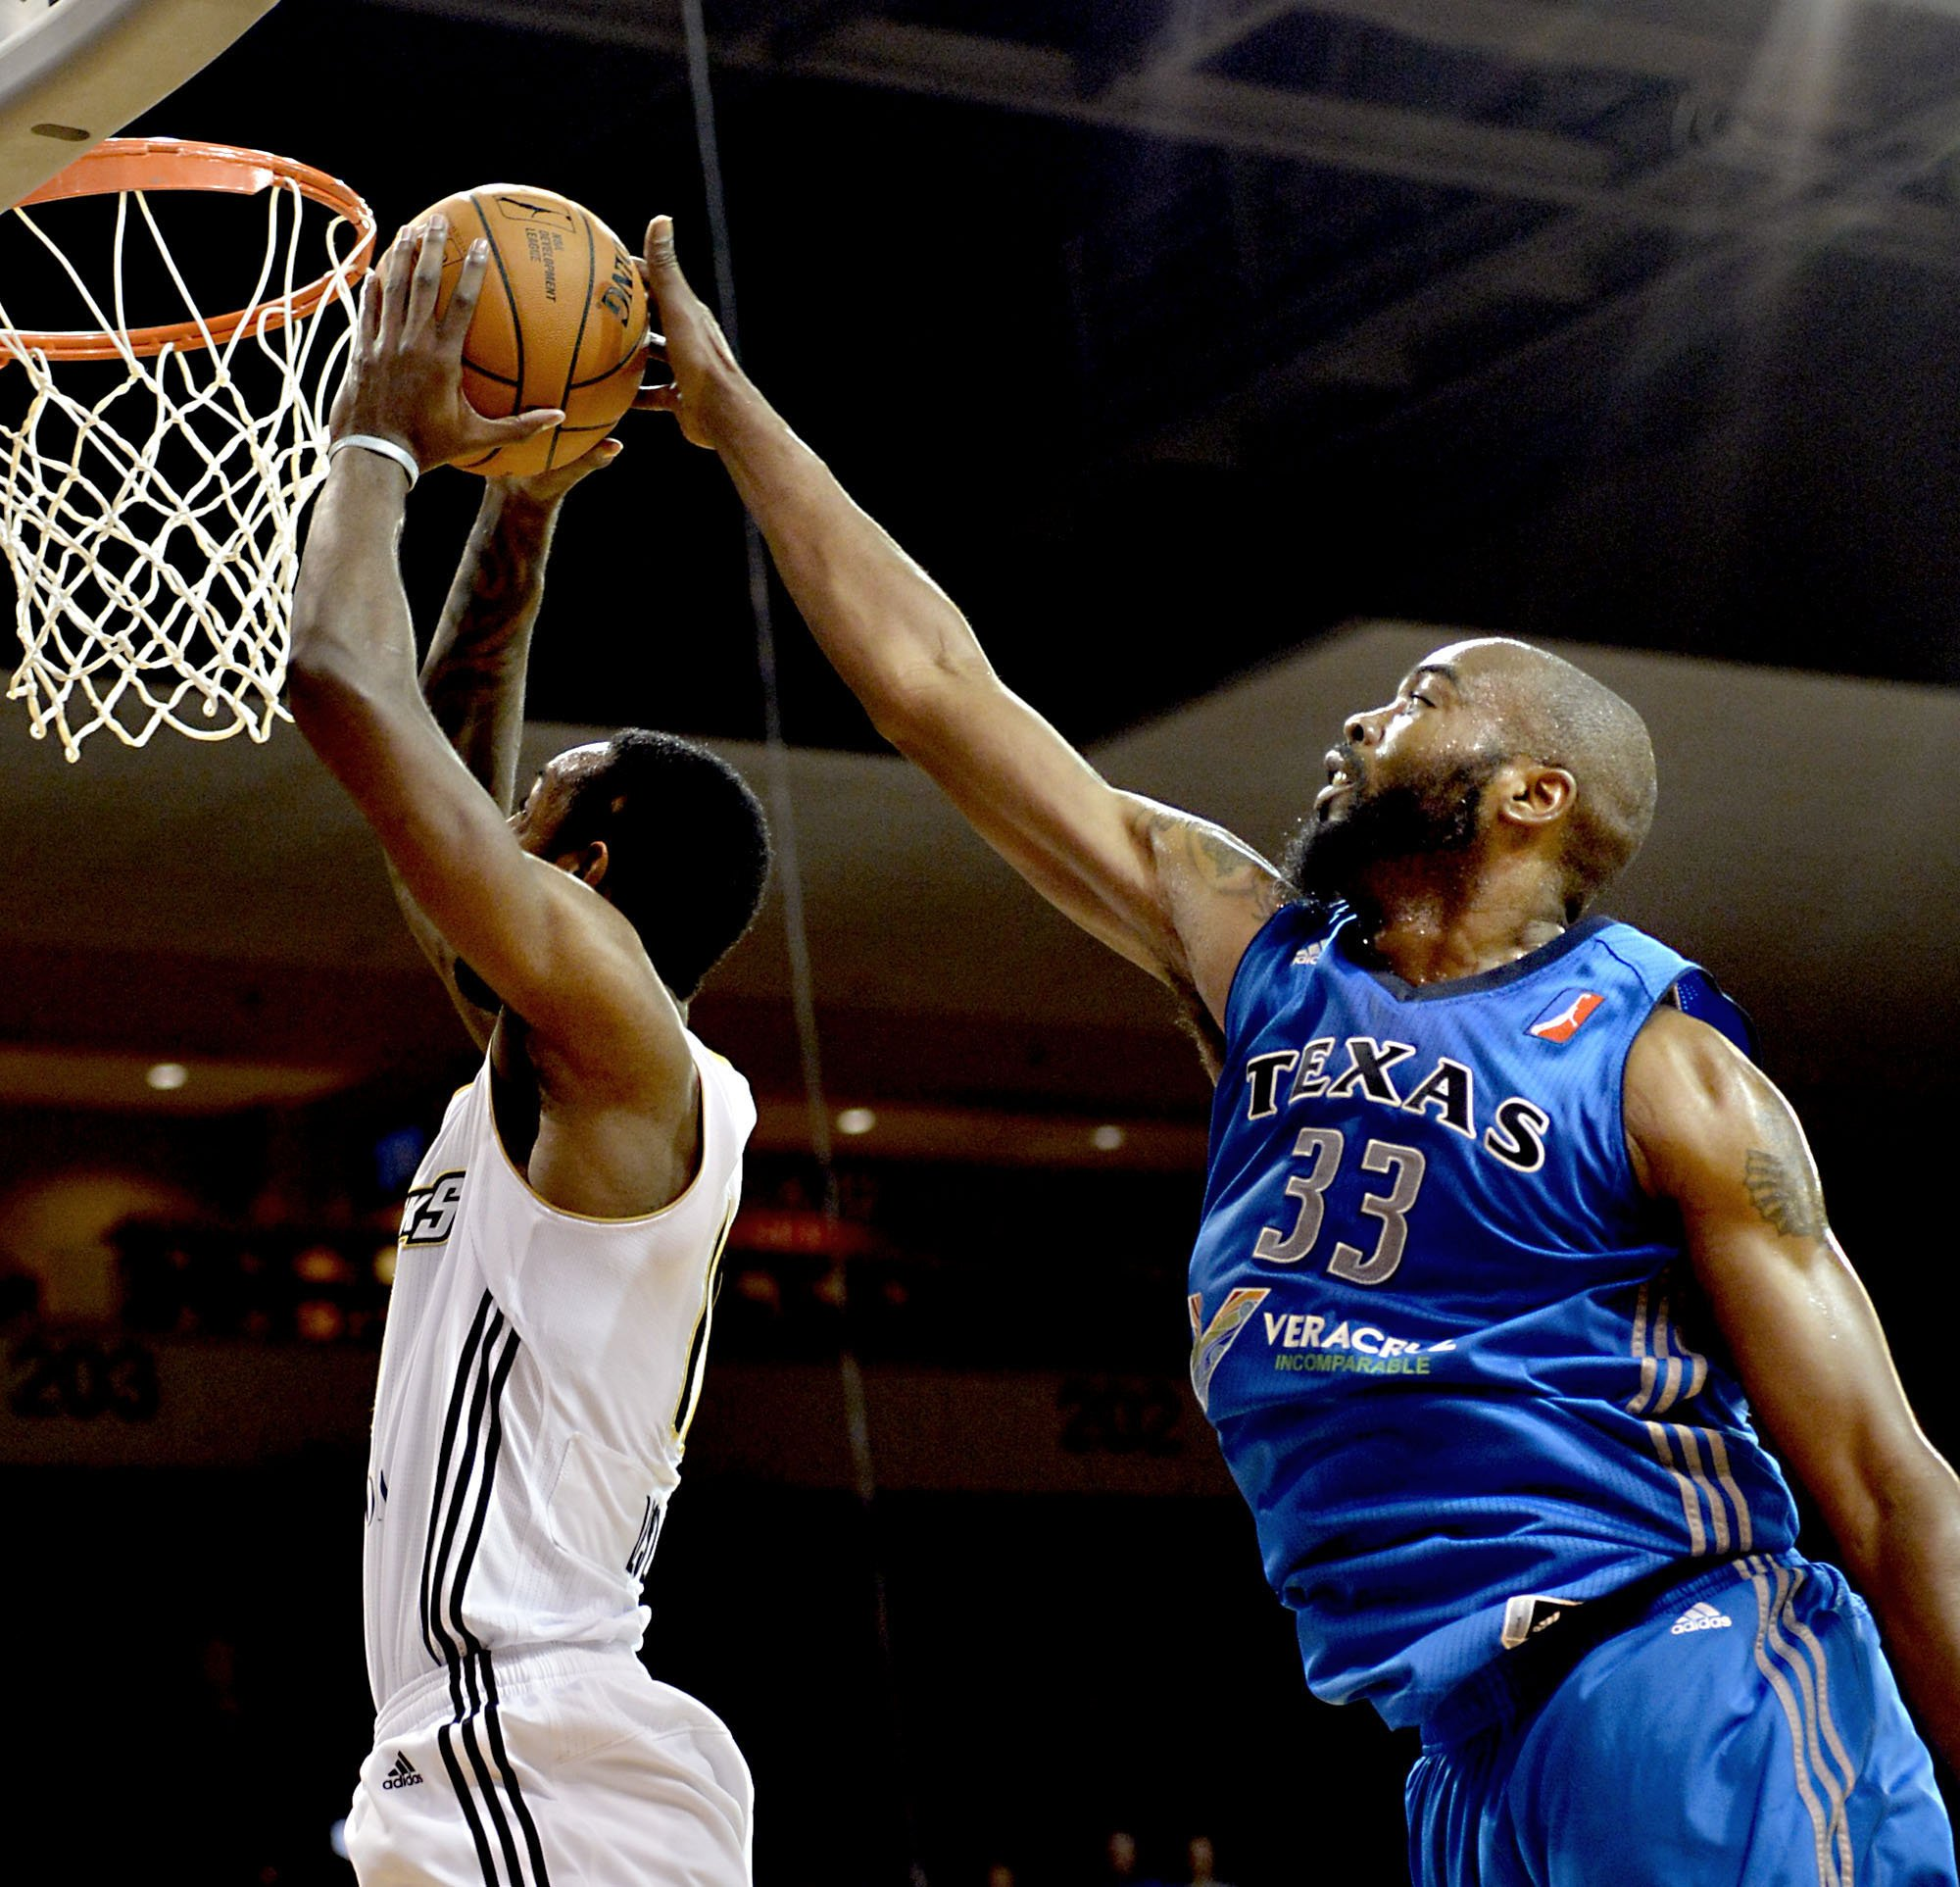 Veteran big man Melvin Ely returns to NBA after 3-year absence …